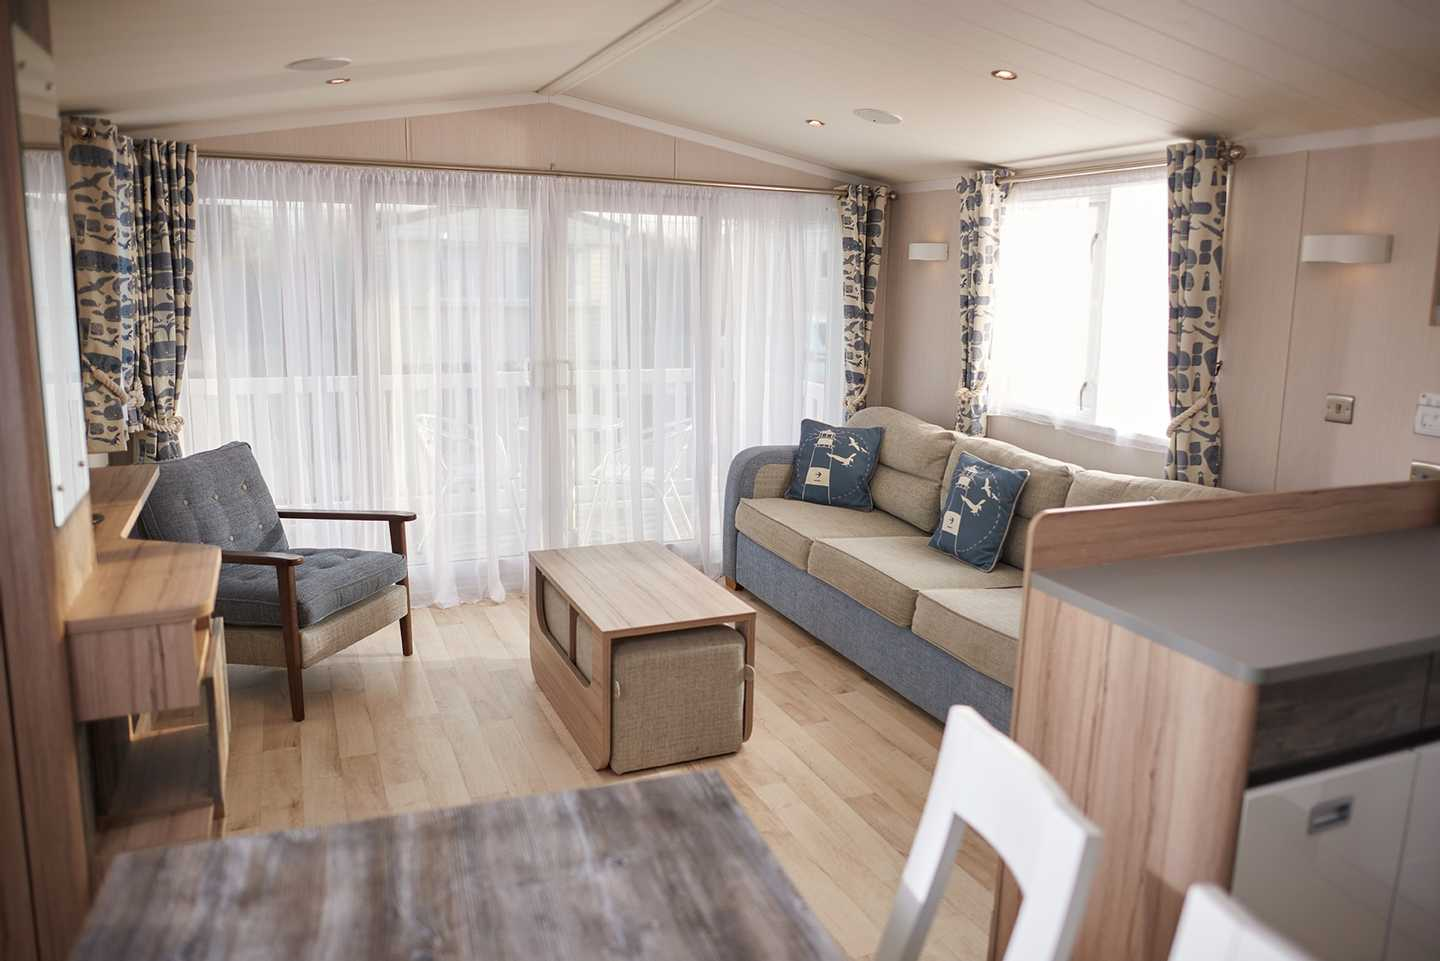 Kitchen and lounge area in a Platinum caravan